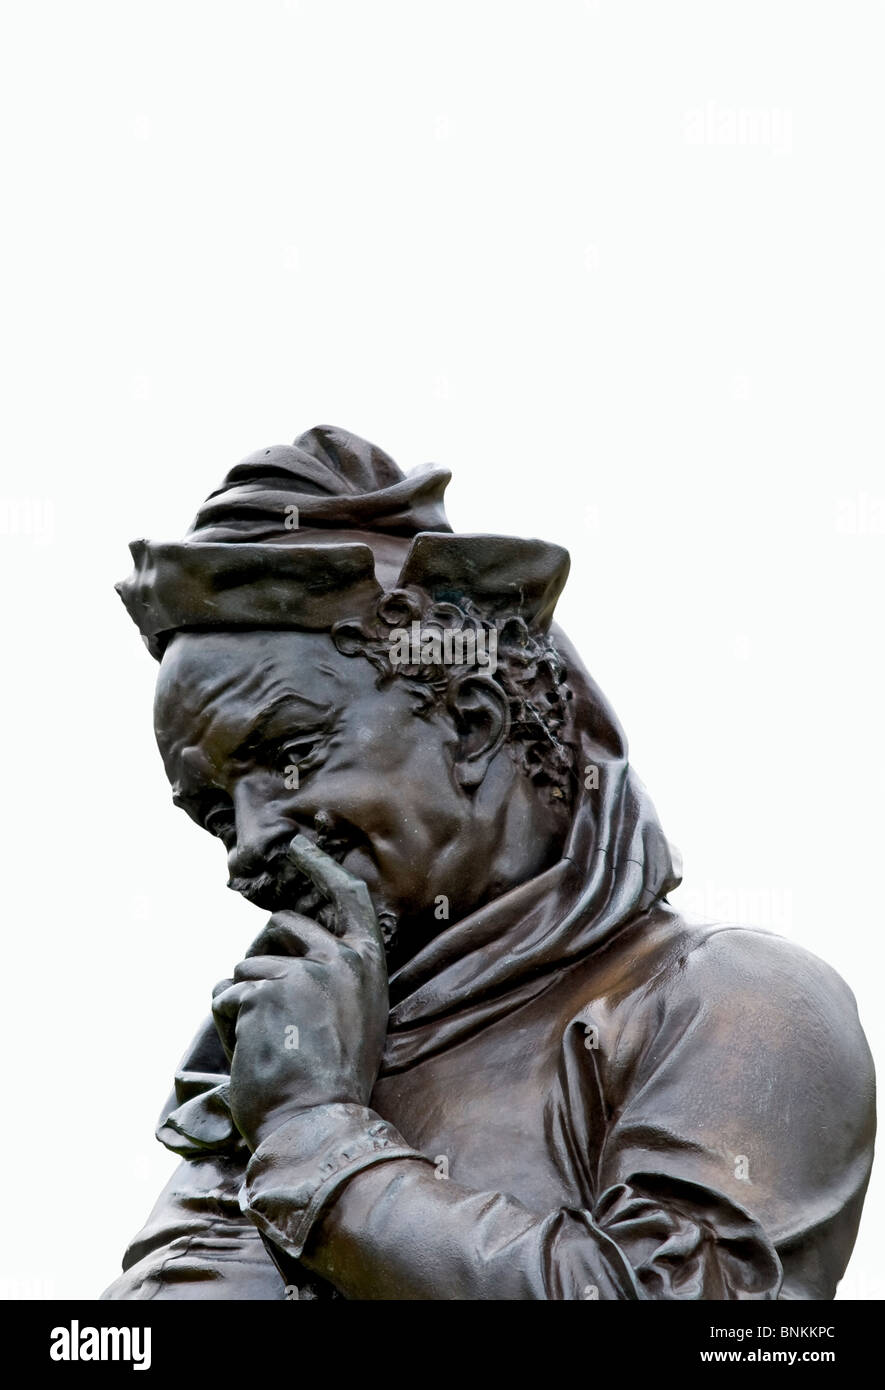 Cut out of the Falstaff sculpture at the Sir Ronald Gower Memorial to Shakespeare in Stratford upon Avon, Warwickshire, - Stock Image